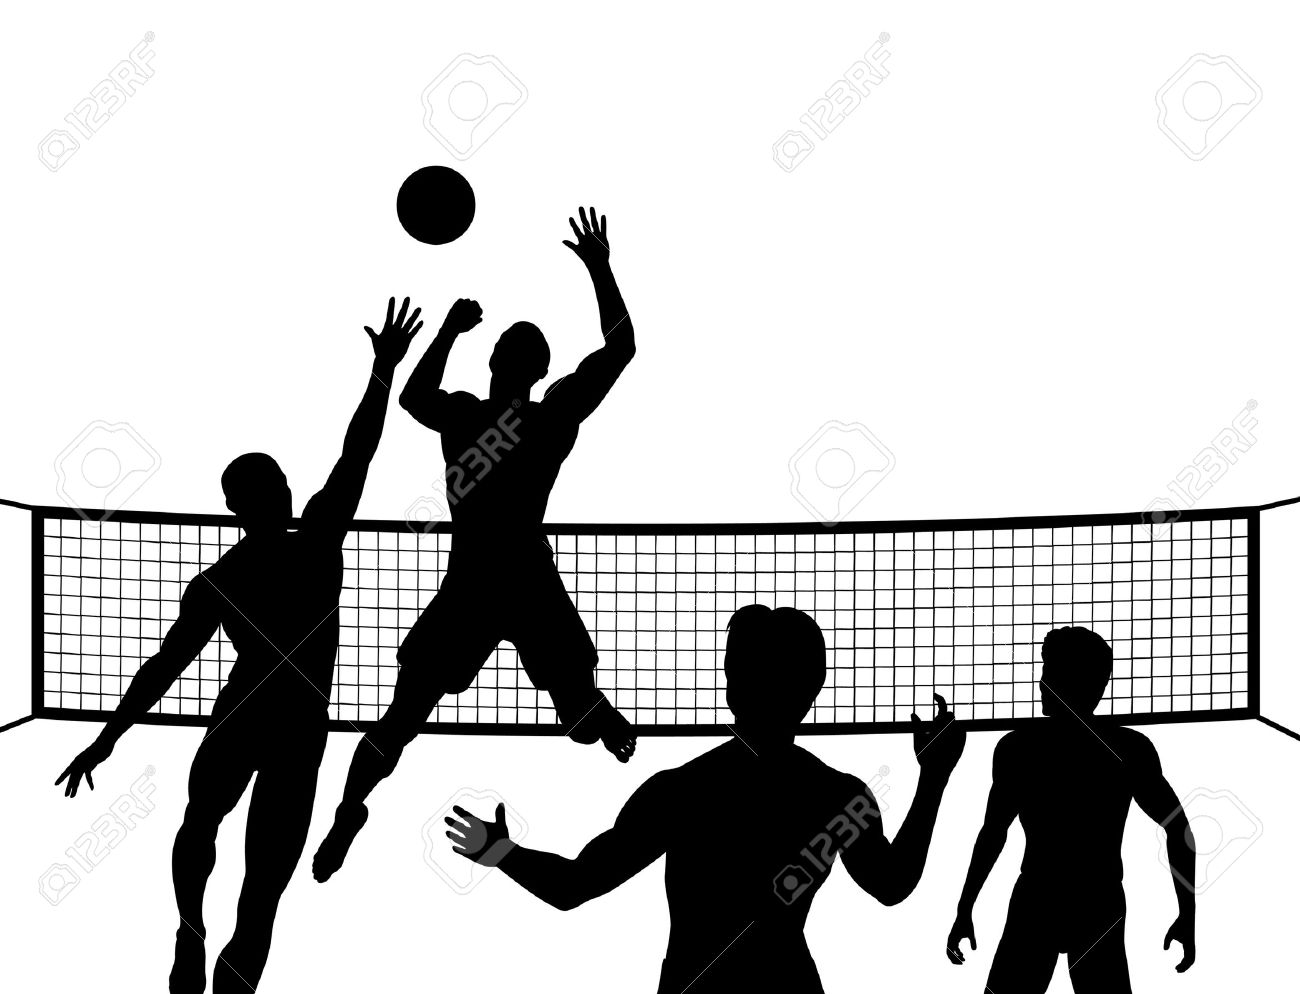 Volleyball players in action clipart jpg free library Volleyball players in action clipart 5 » Clipart Station jpg free library